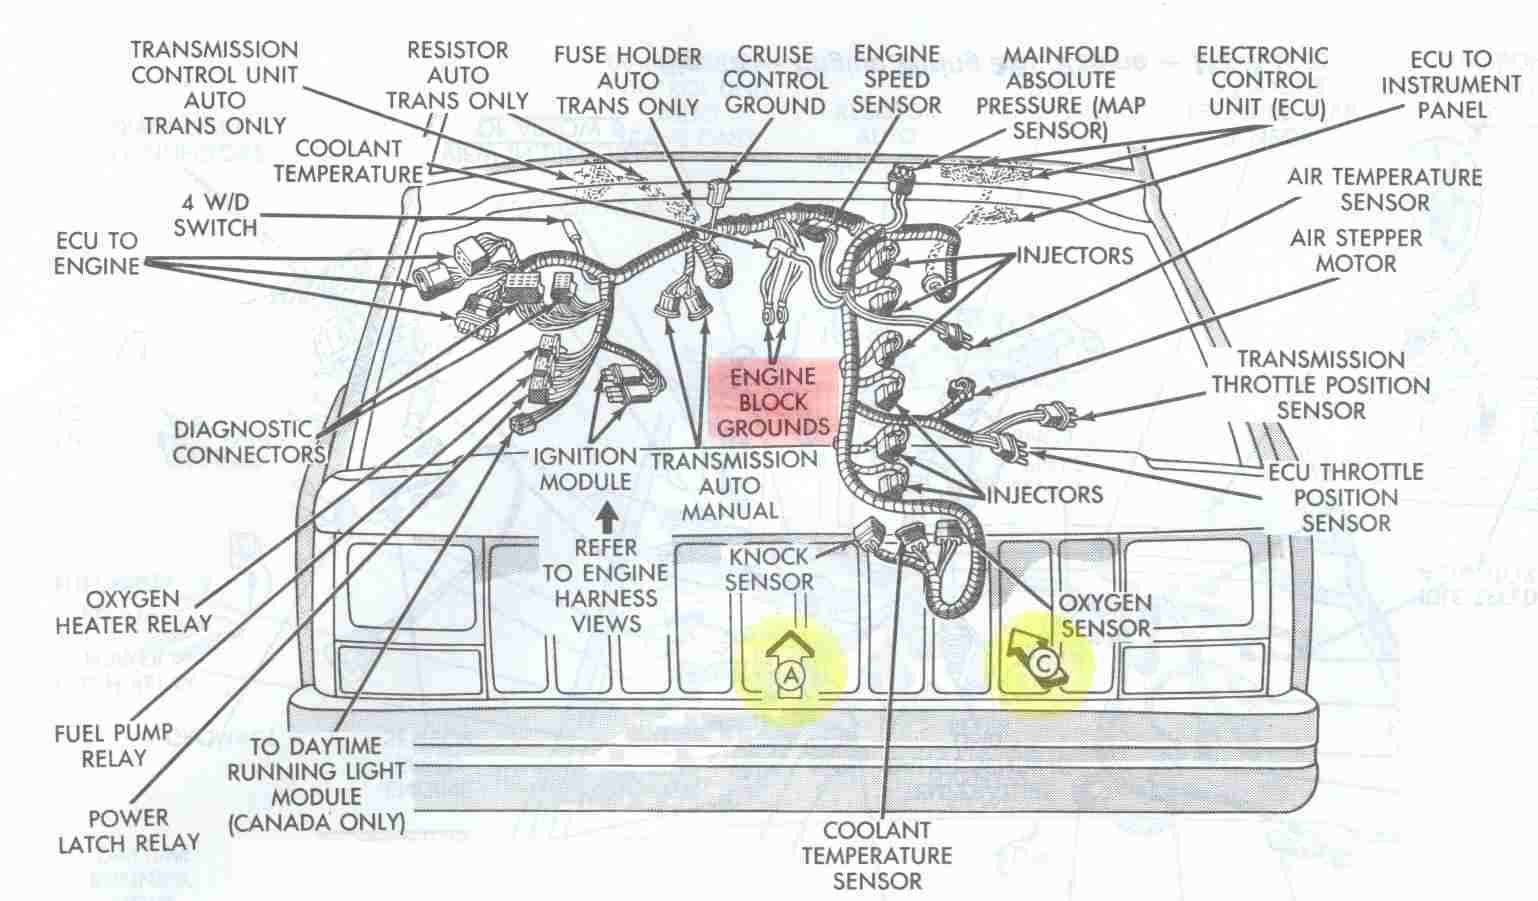 engine bay schematic showing major electrical ground points for 1993 jeep wrangler wiring schematic 87 jeep wrangler ignition wiring diagram